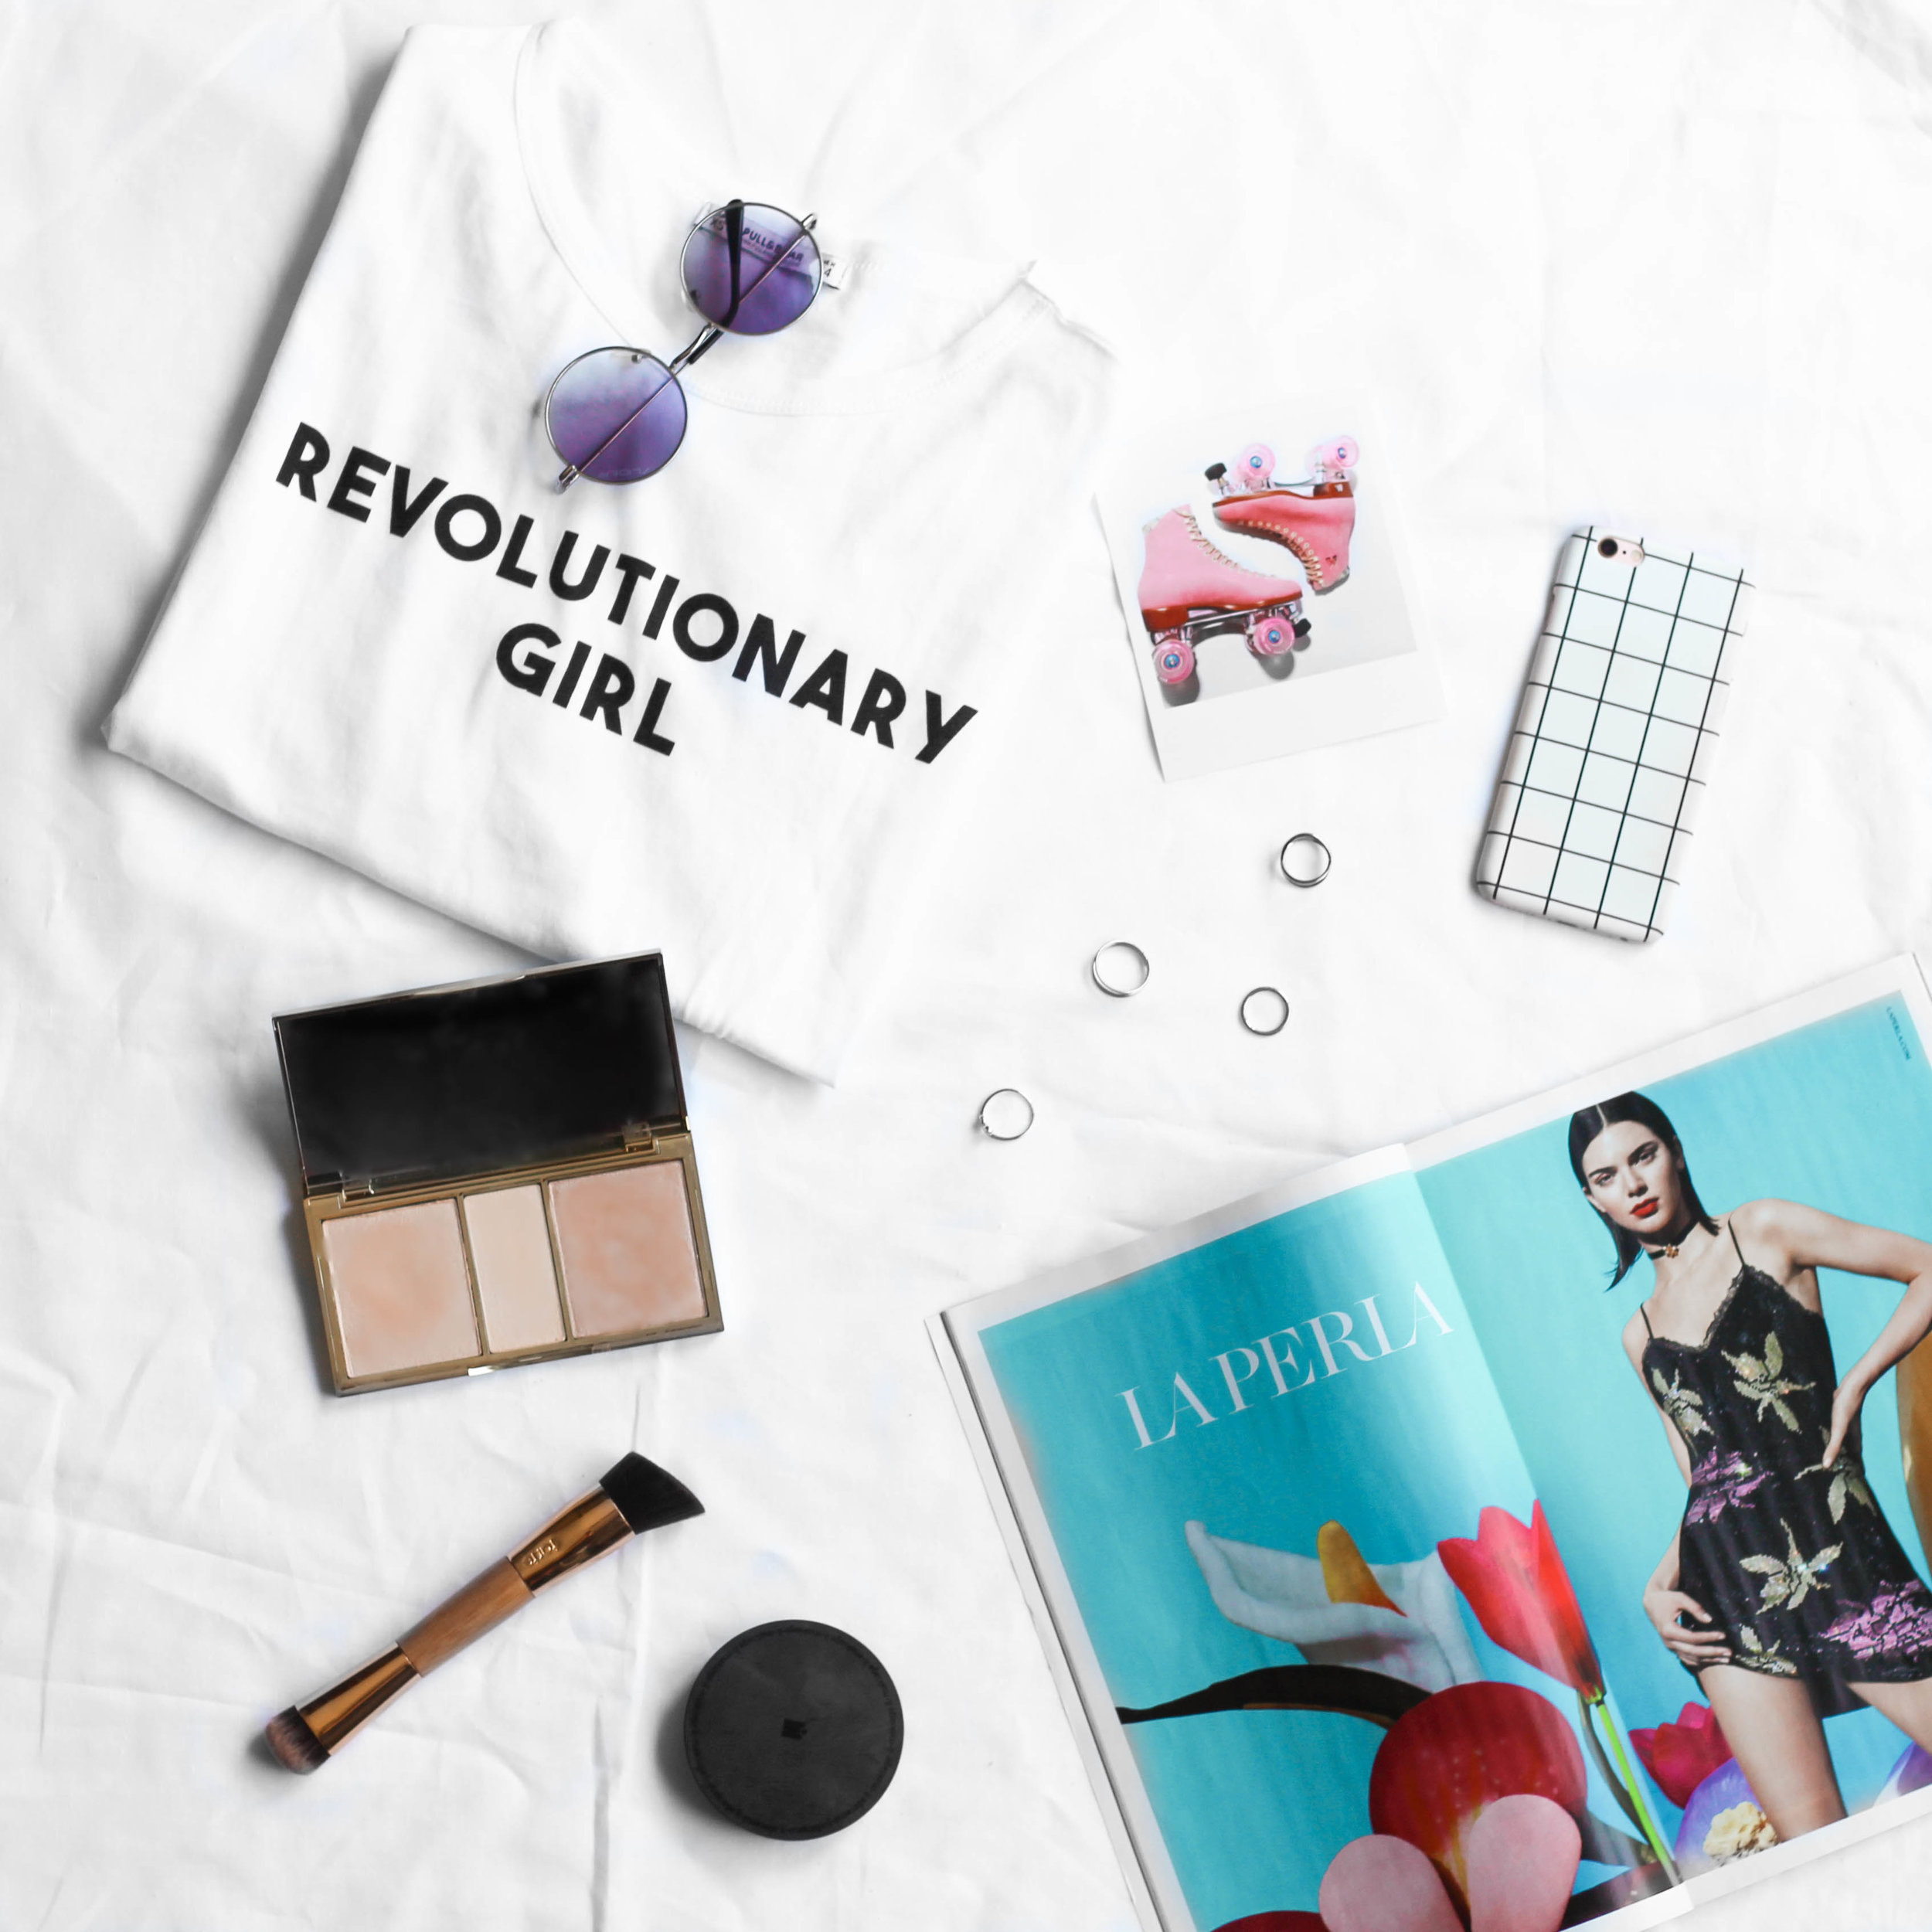 The flatlays include items that are common in Naomi's photos, with makeup products and fashion magazines - to bring a little bit of me into the photo.